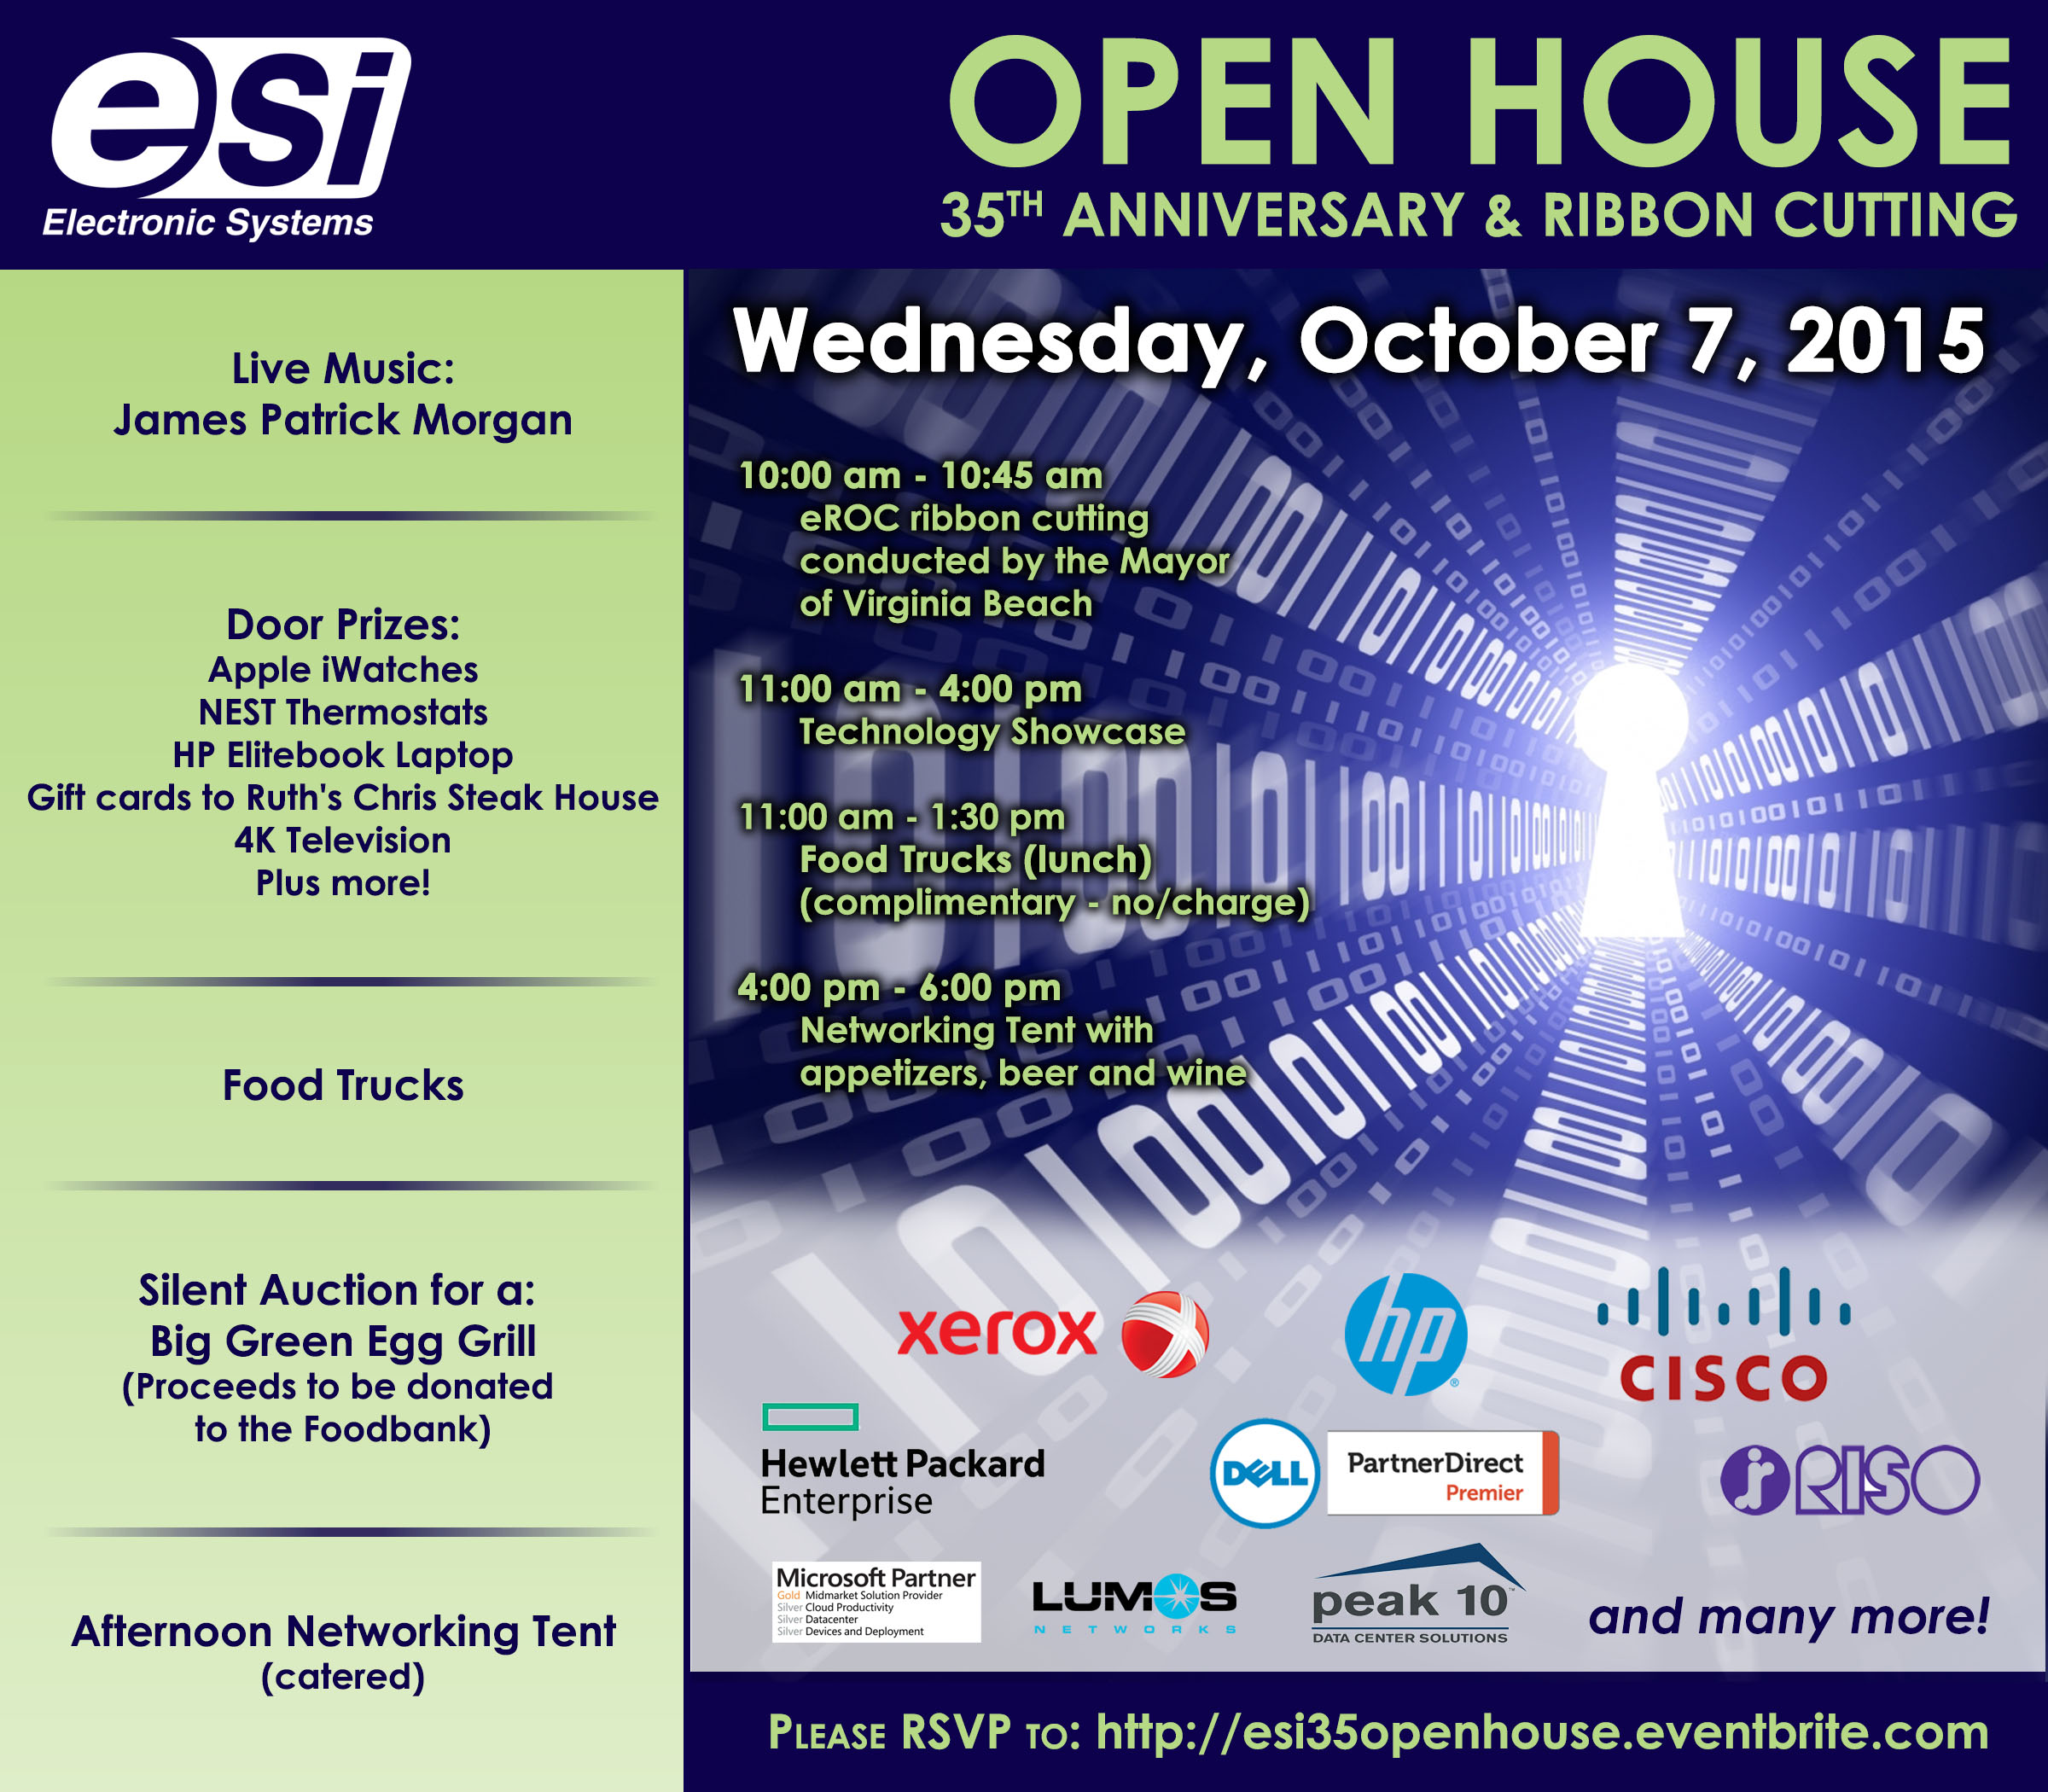 Join ESI at their Open House to Celebrate 35th Anniversary